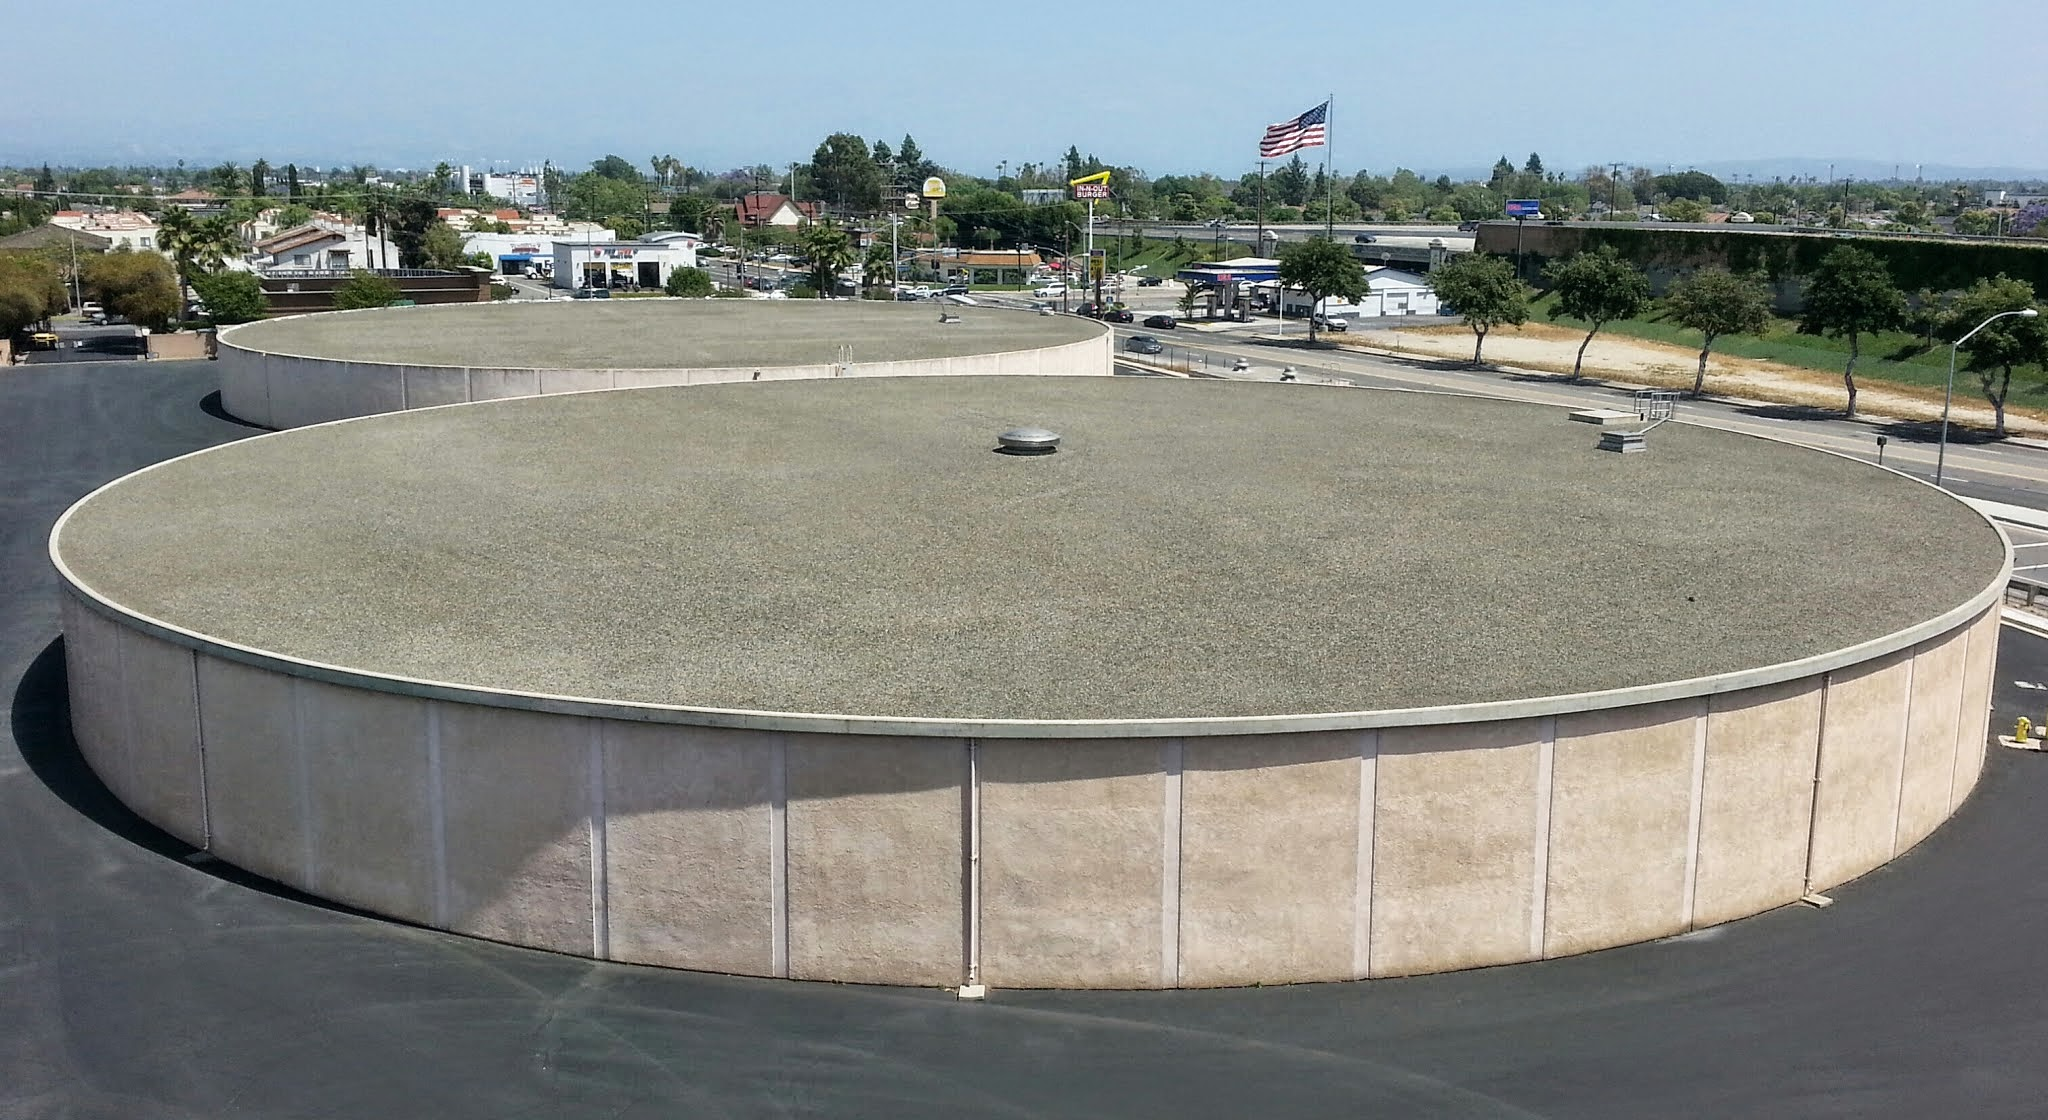 Photo of a Storage Tank